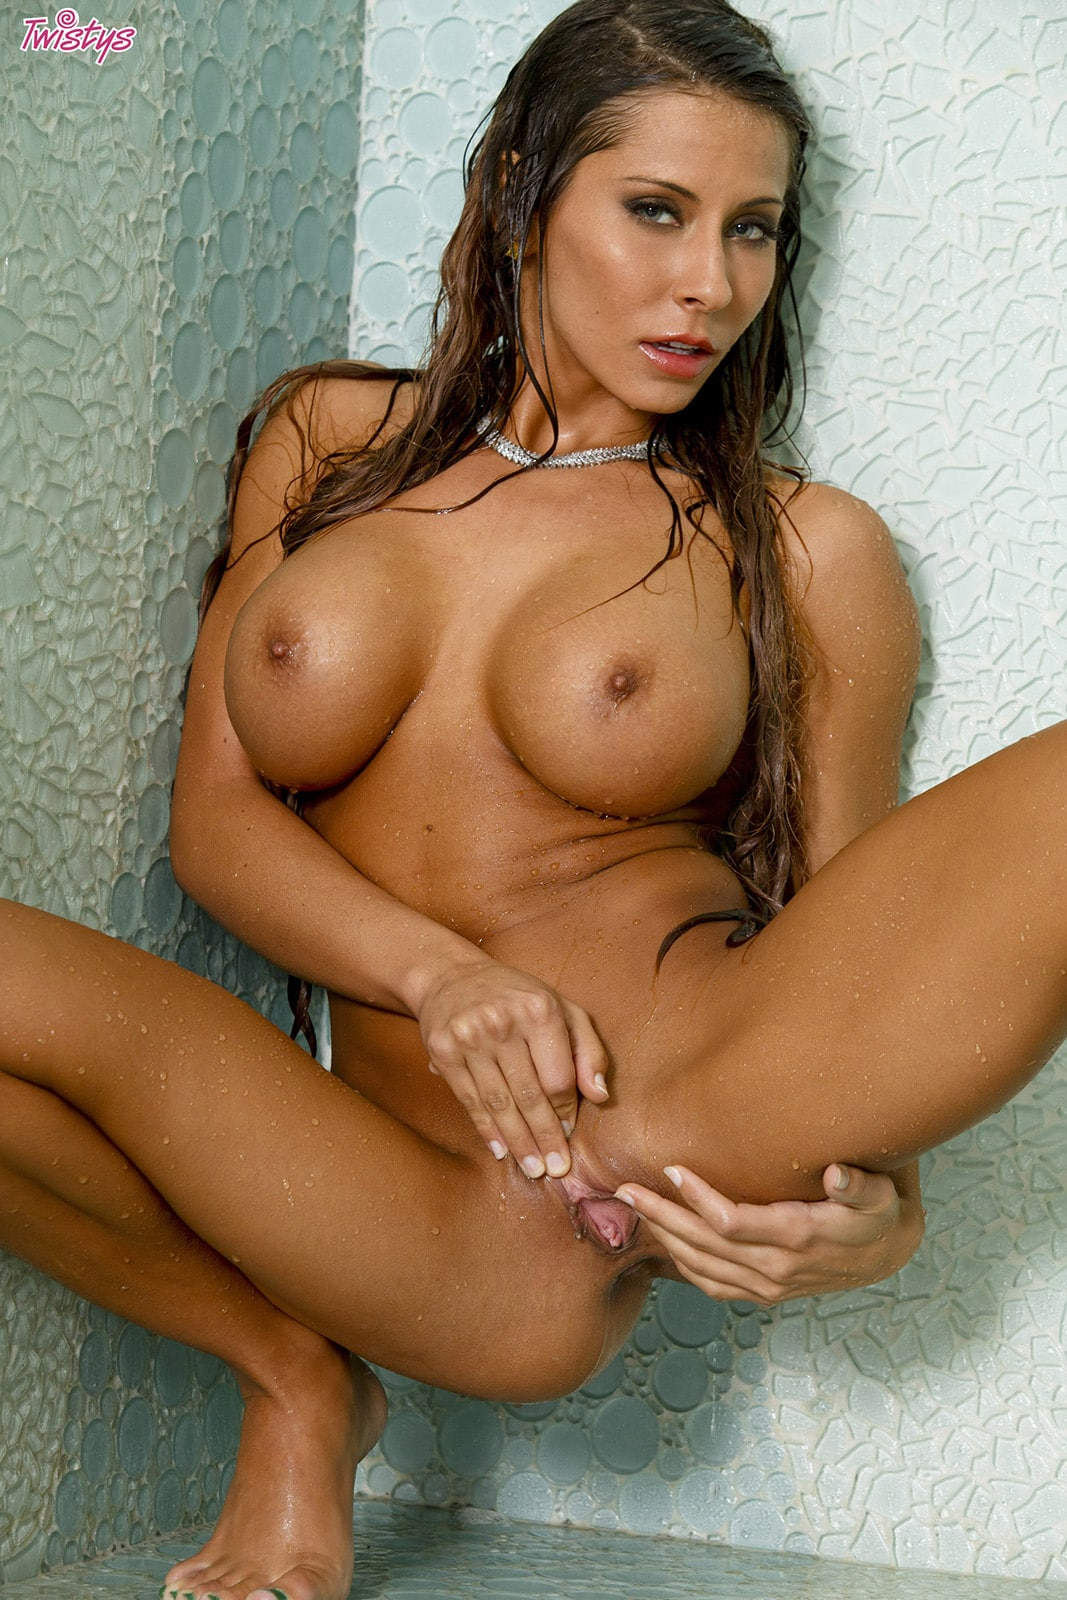 Madison Ivy striping white lingerie and enjoying a shower